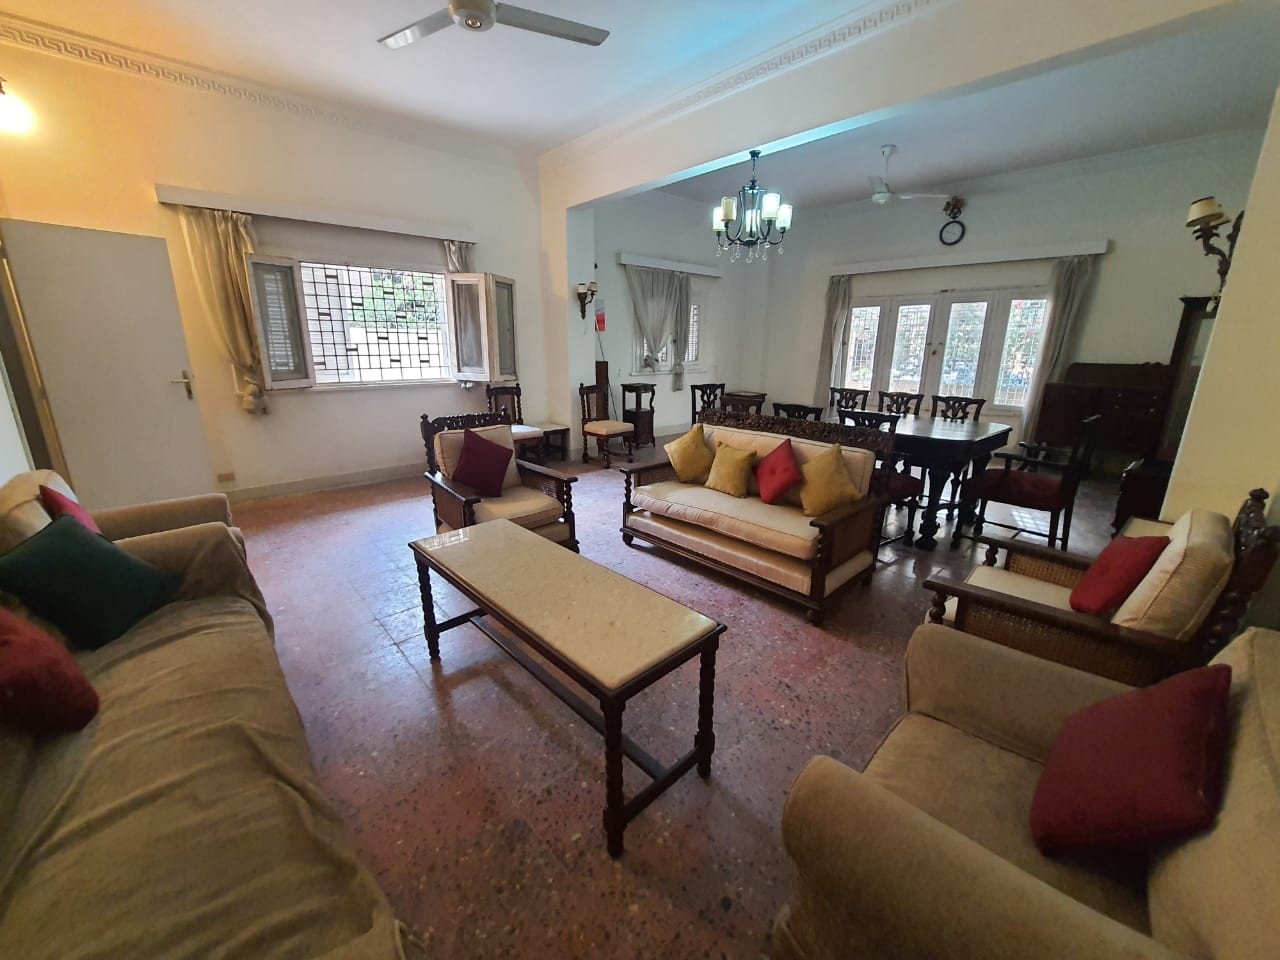 High Ceiling Fully Furnished 2 Bedroom Ground Floor For Rent In Sarayat El Maadi - 4917 Featured Image